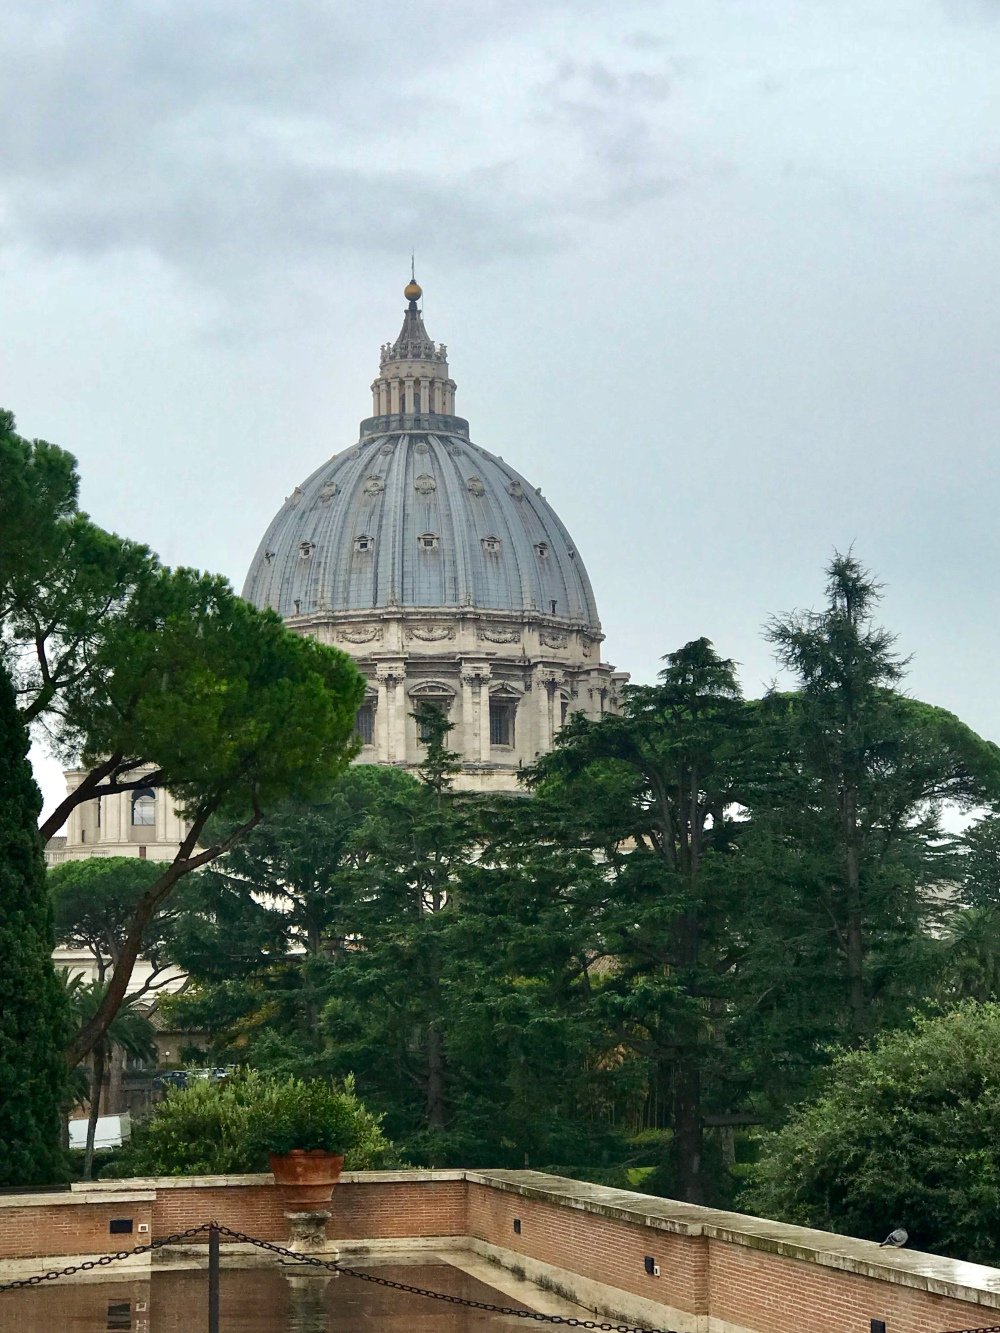 The Dome of St Peter's Basilica